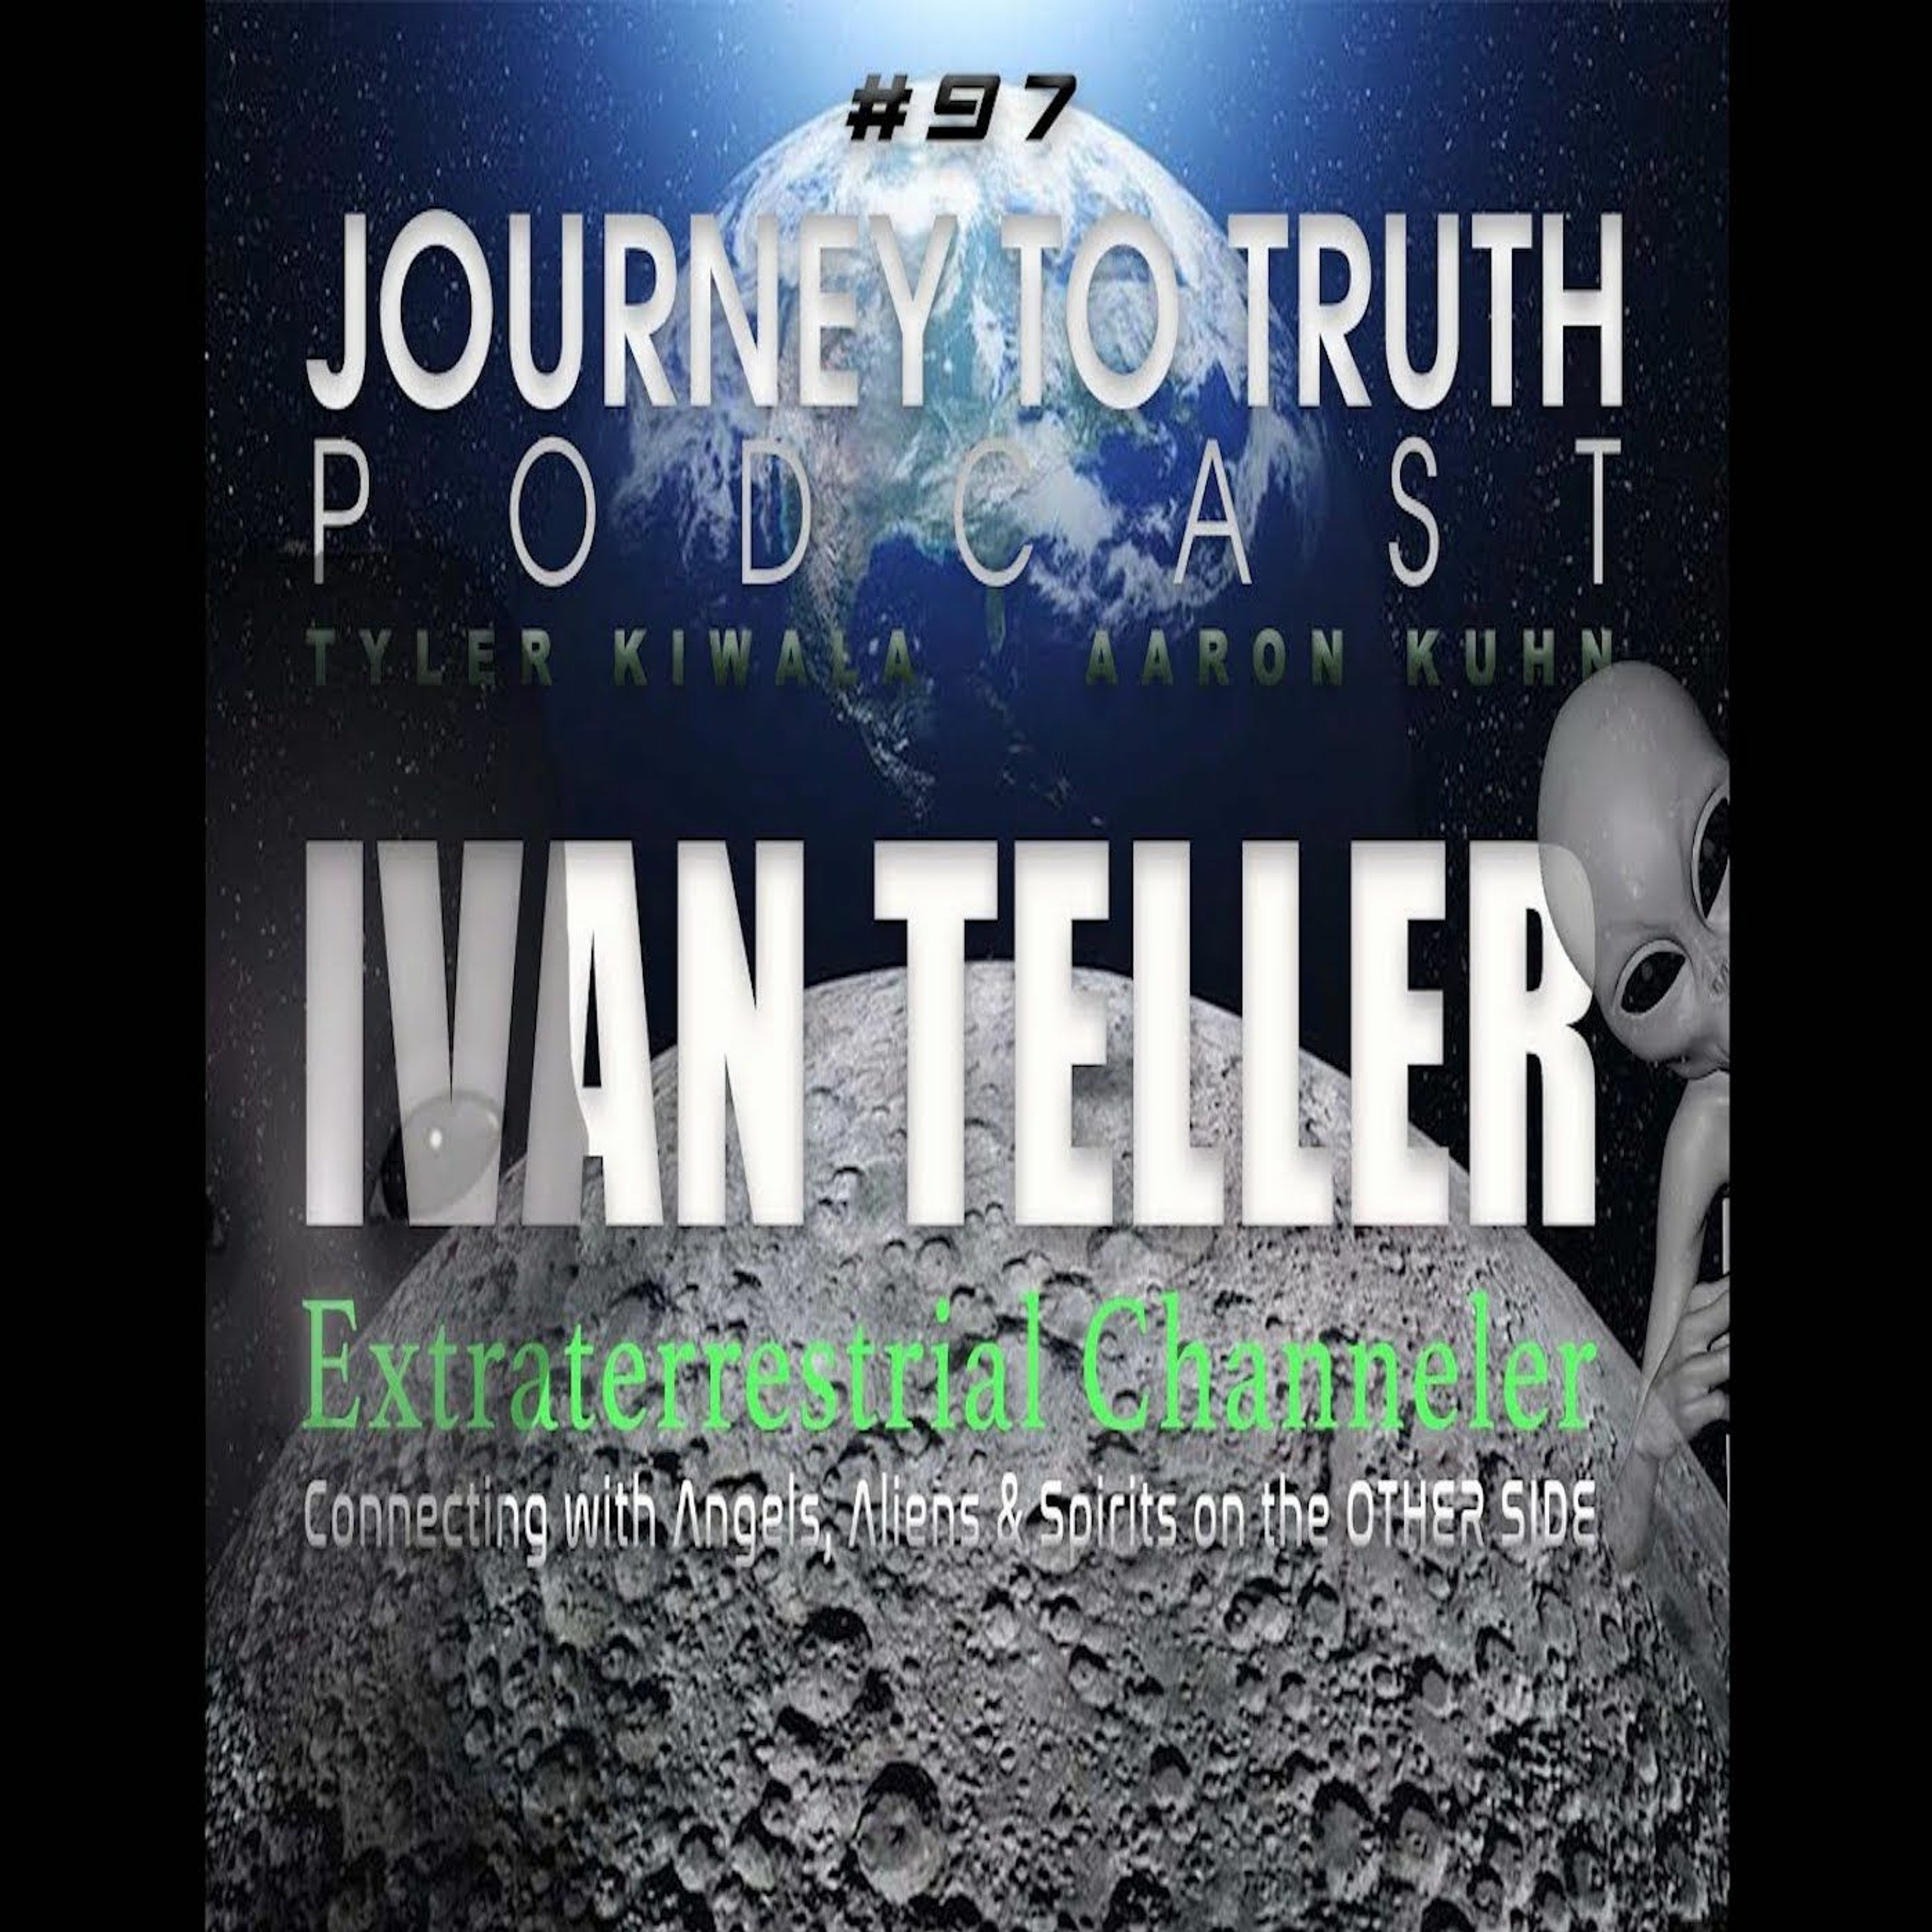 EP 97 - Ivan Teller - Extraterrestrials - Clones - Stargates - Channeled Message From The Arcturians